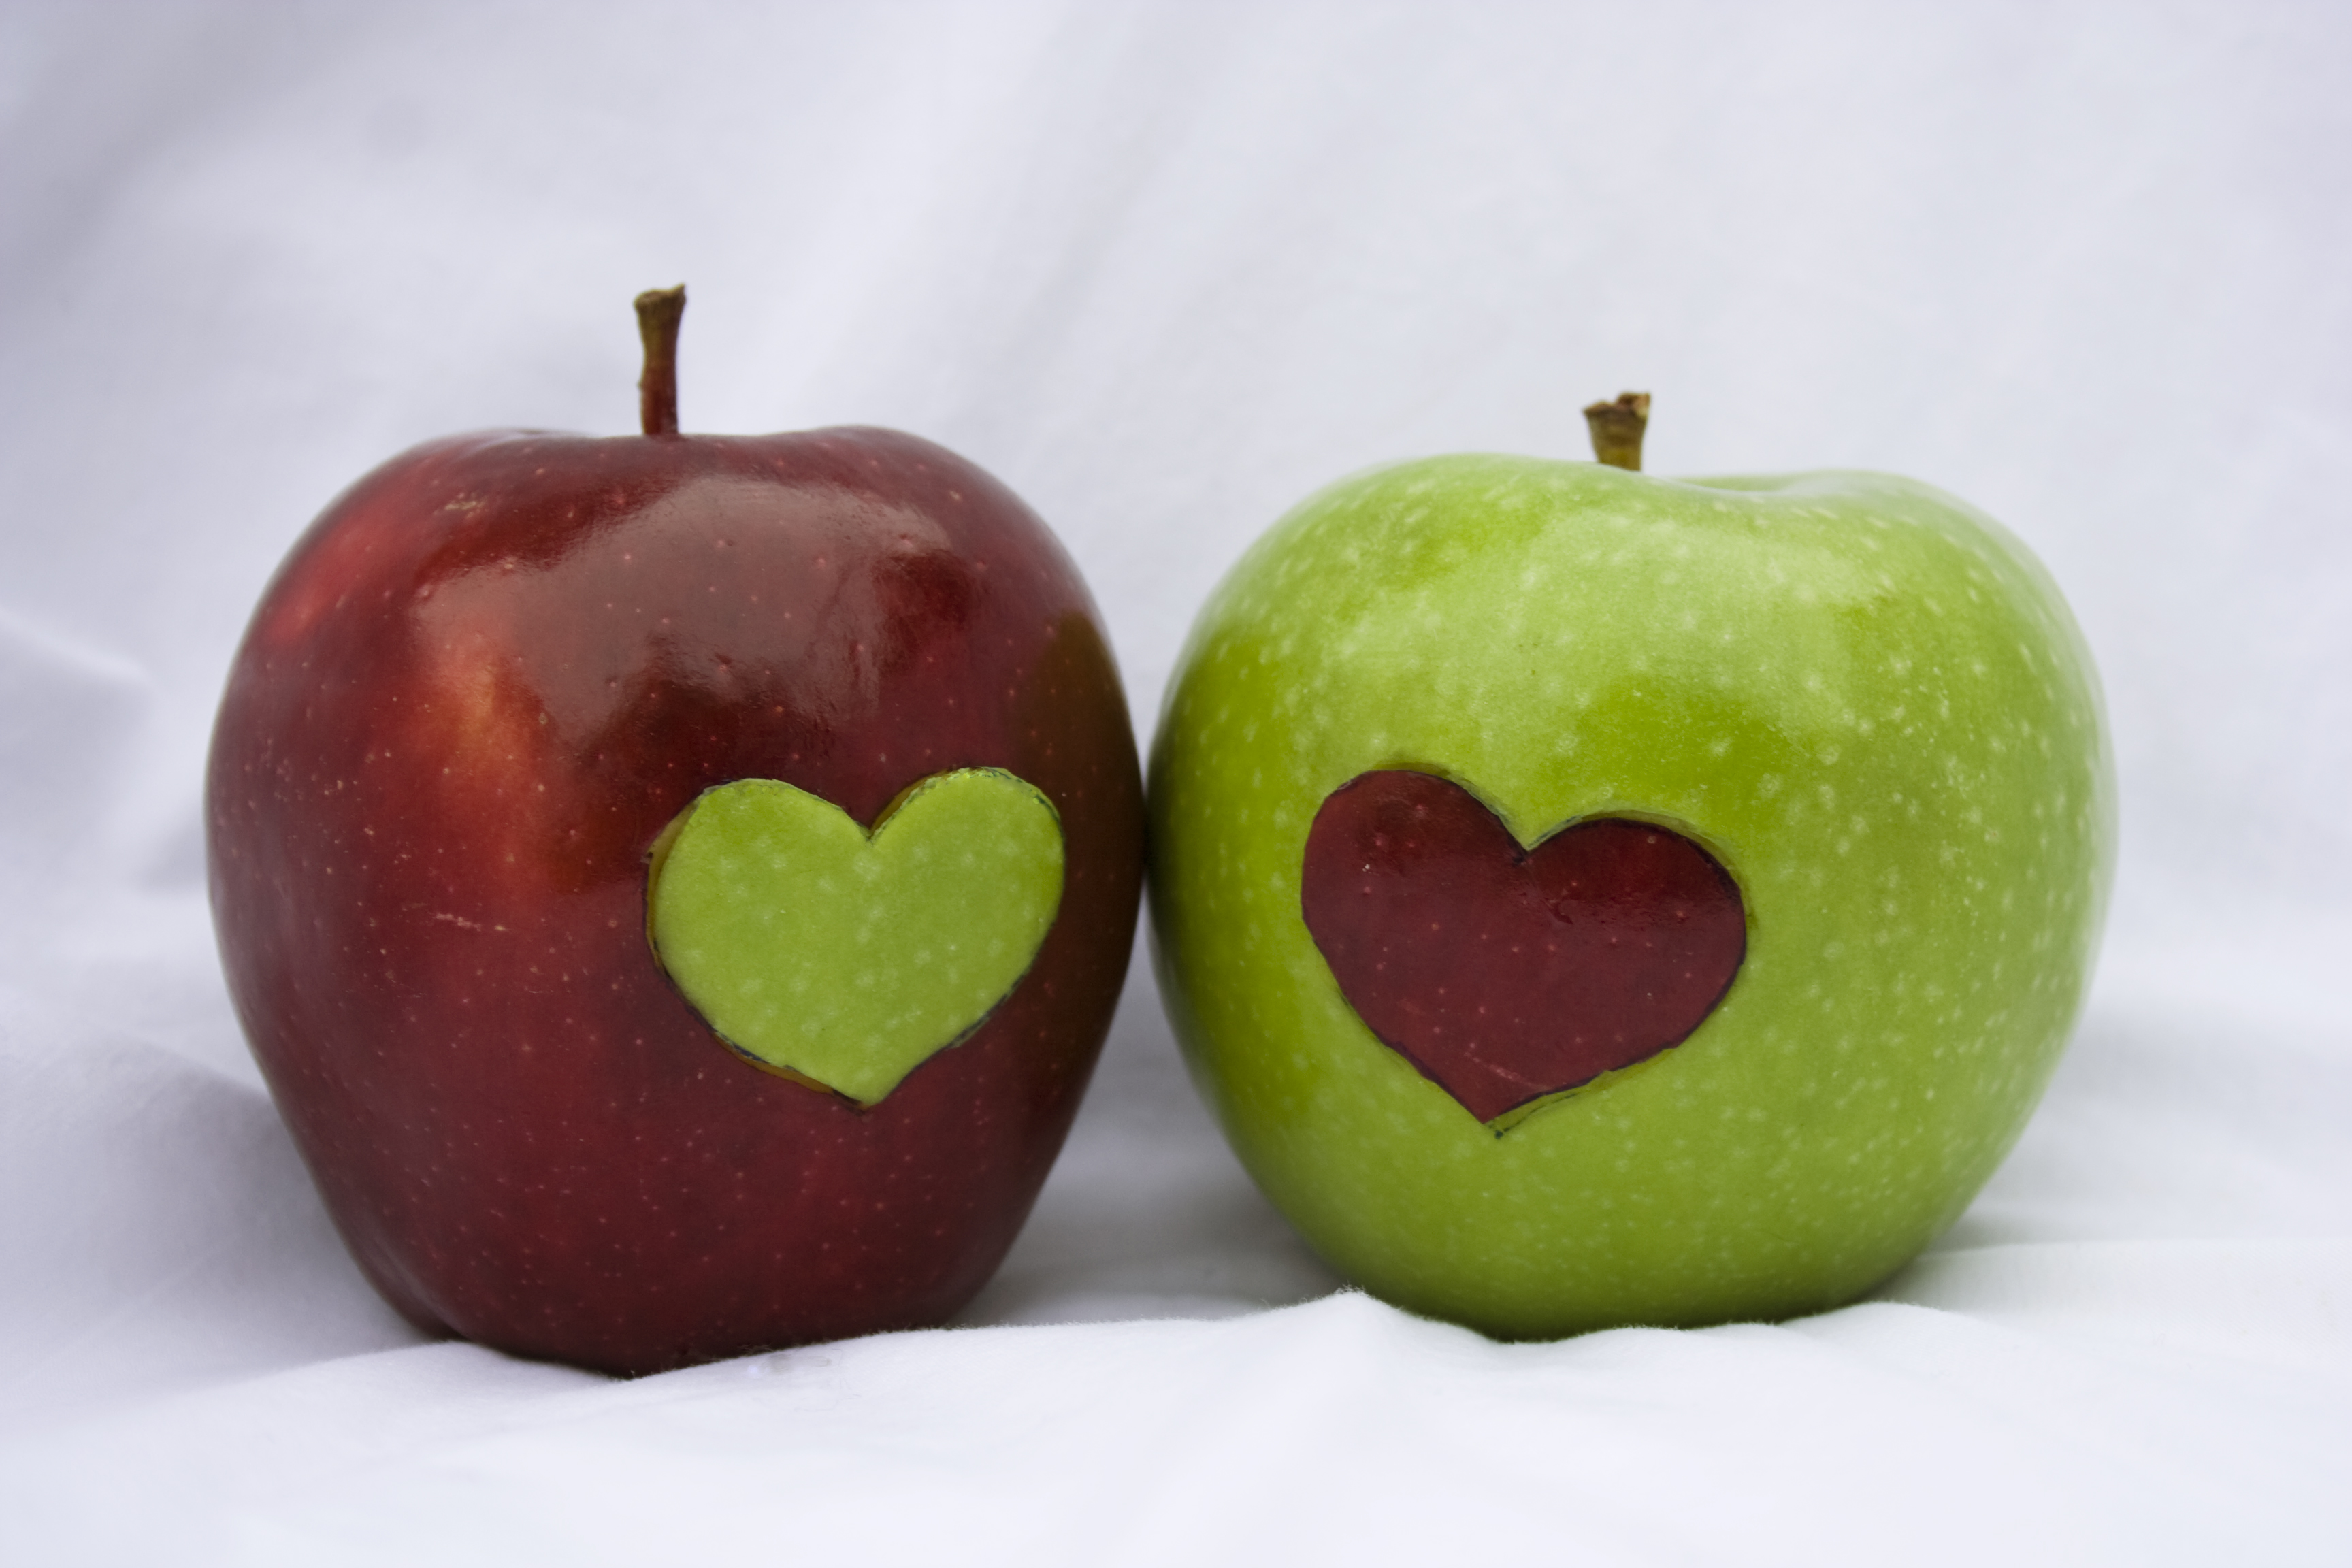 Apples are rich in quercetin, which is an anti-inflammatory.